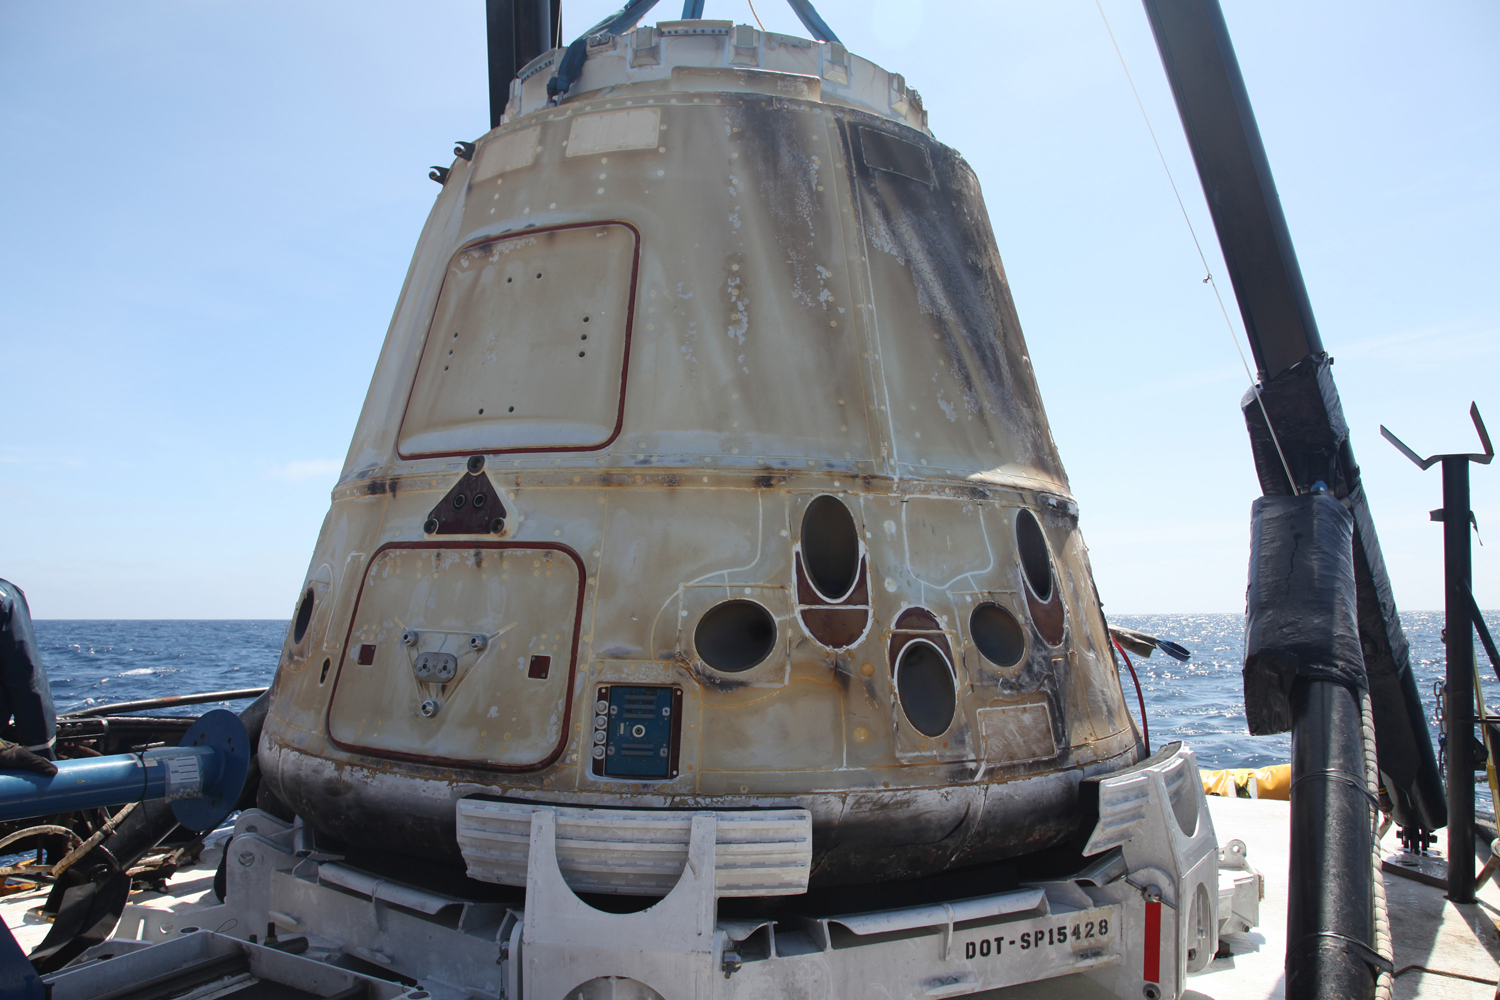 SpaceX's Dragon on the recovery boat on April 13, 2013.